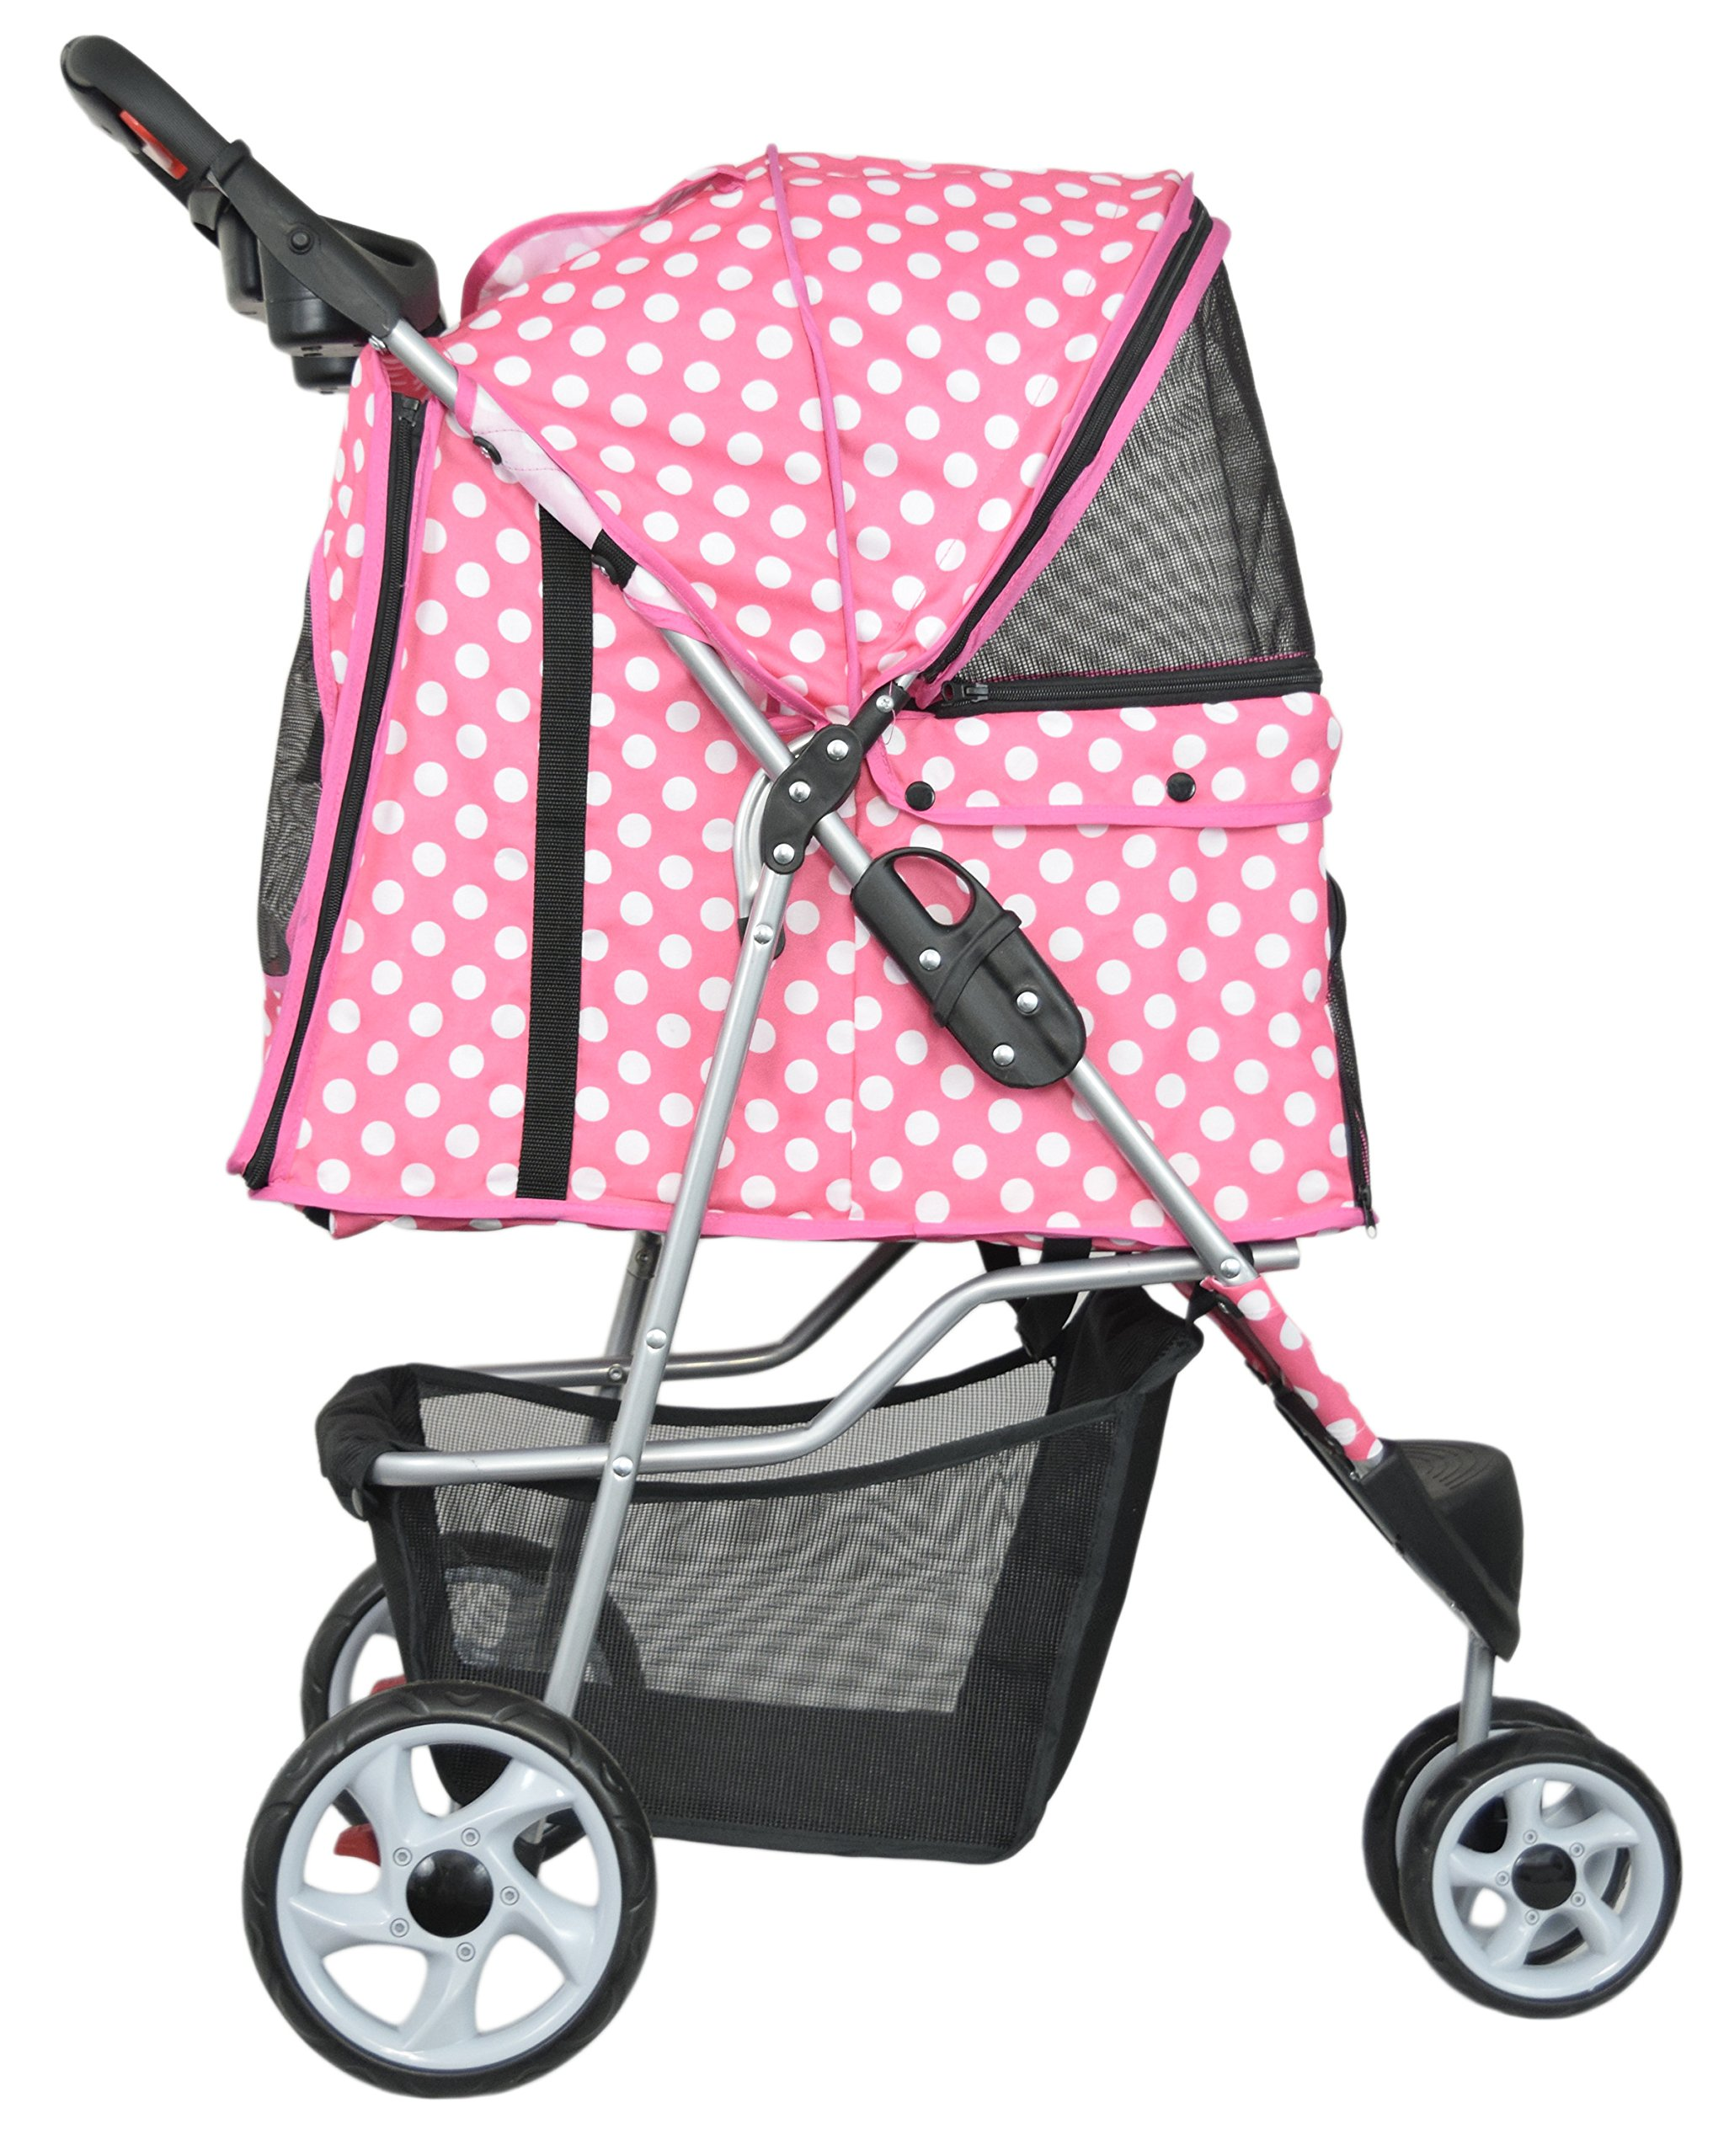 VIVO Three Wheel Pet Stroller, for Cat, Dog and More, Foldable Carrier Strolling Cart, Multiple Colors (Pink & White Polka Dot) by VIVO (Image #3)